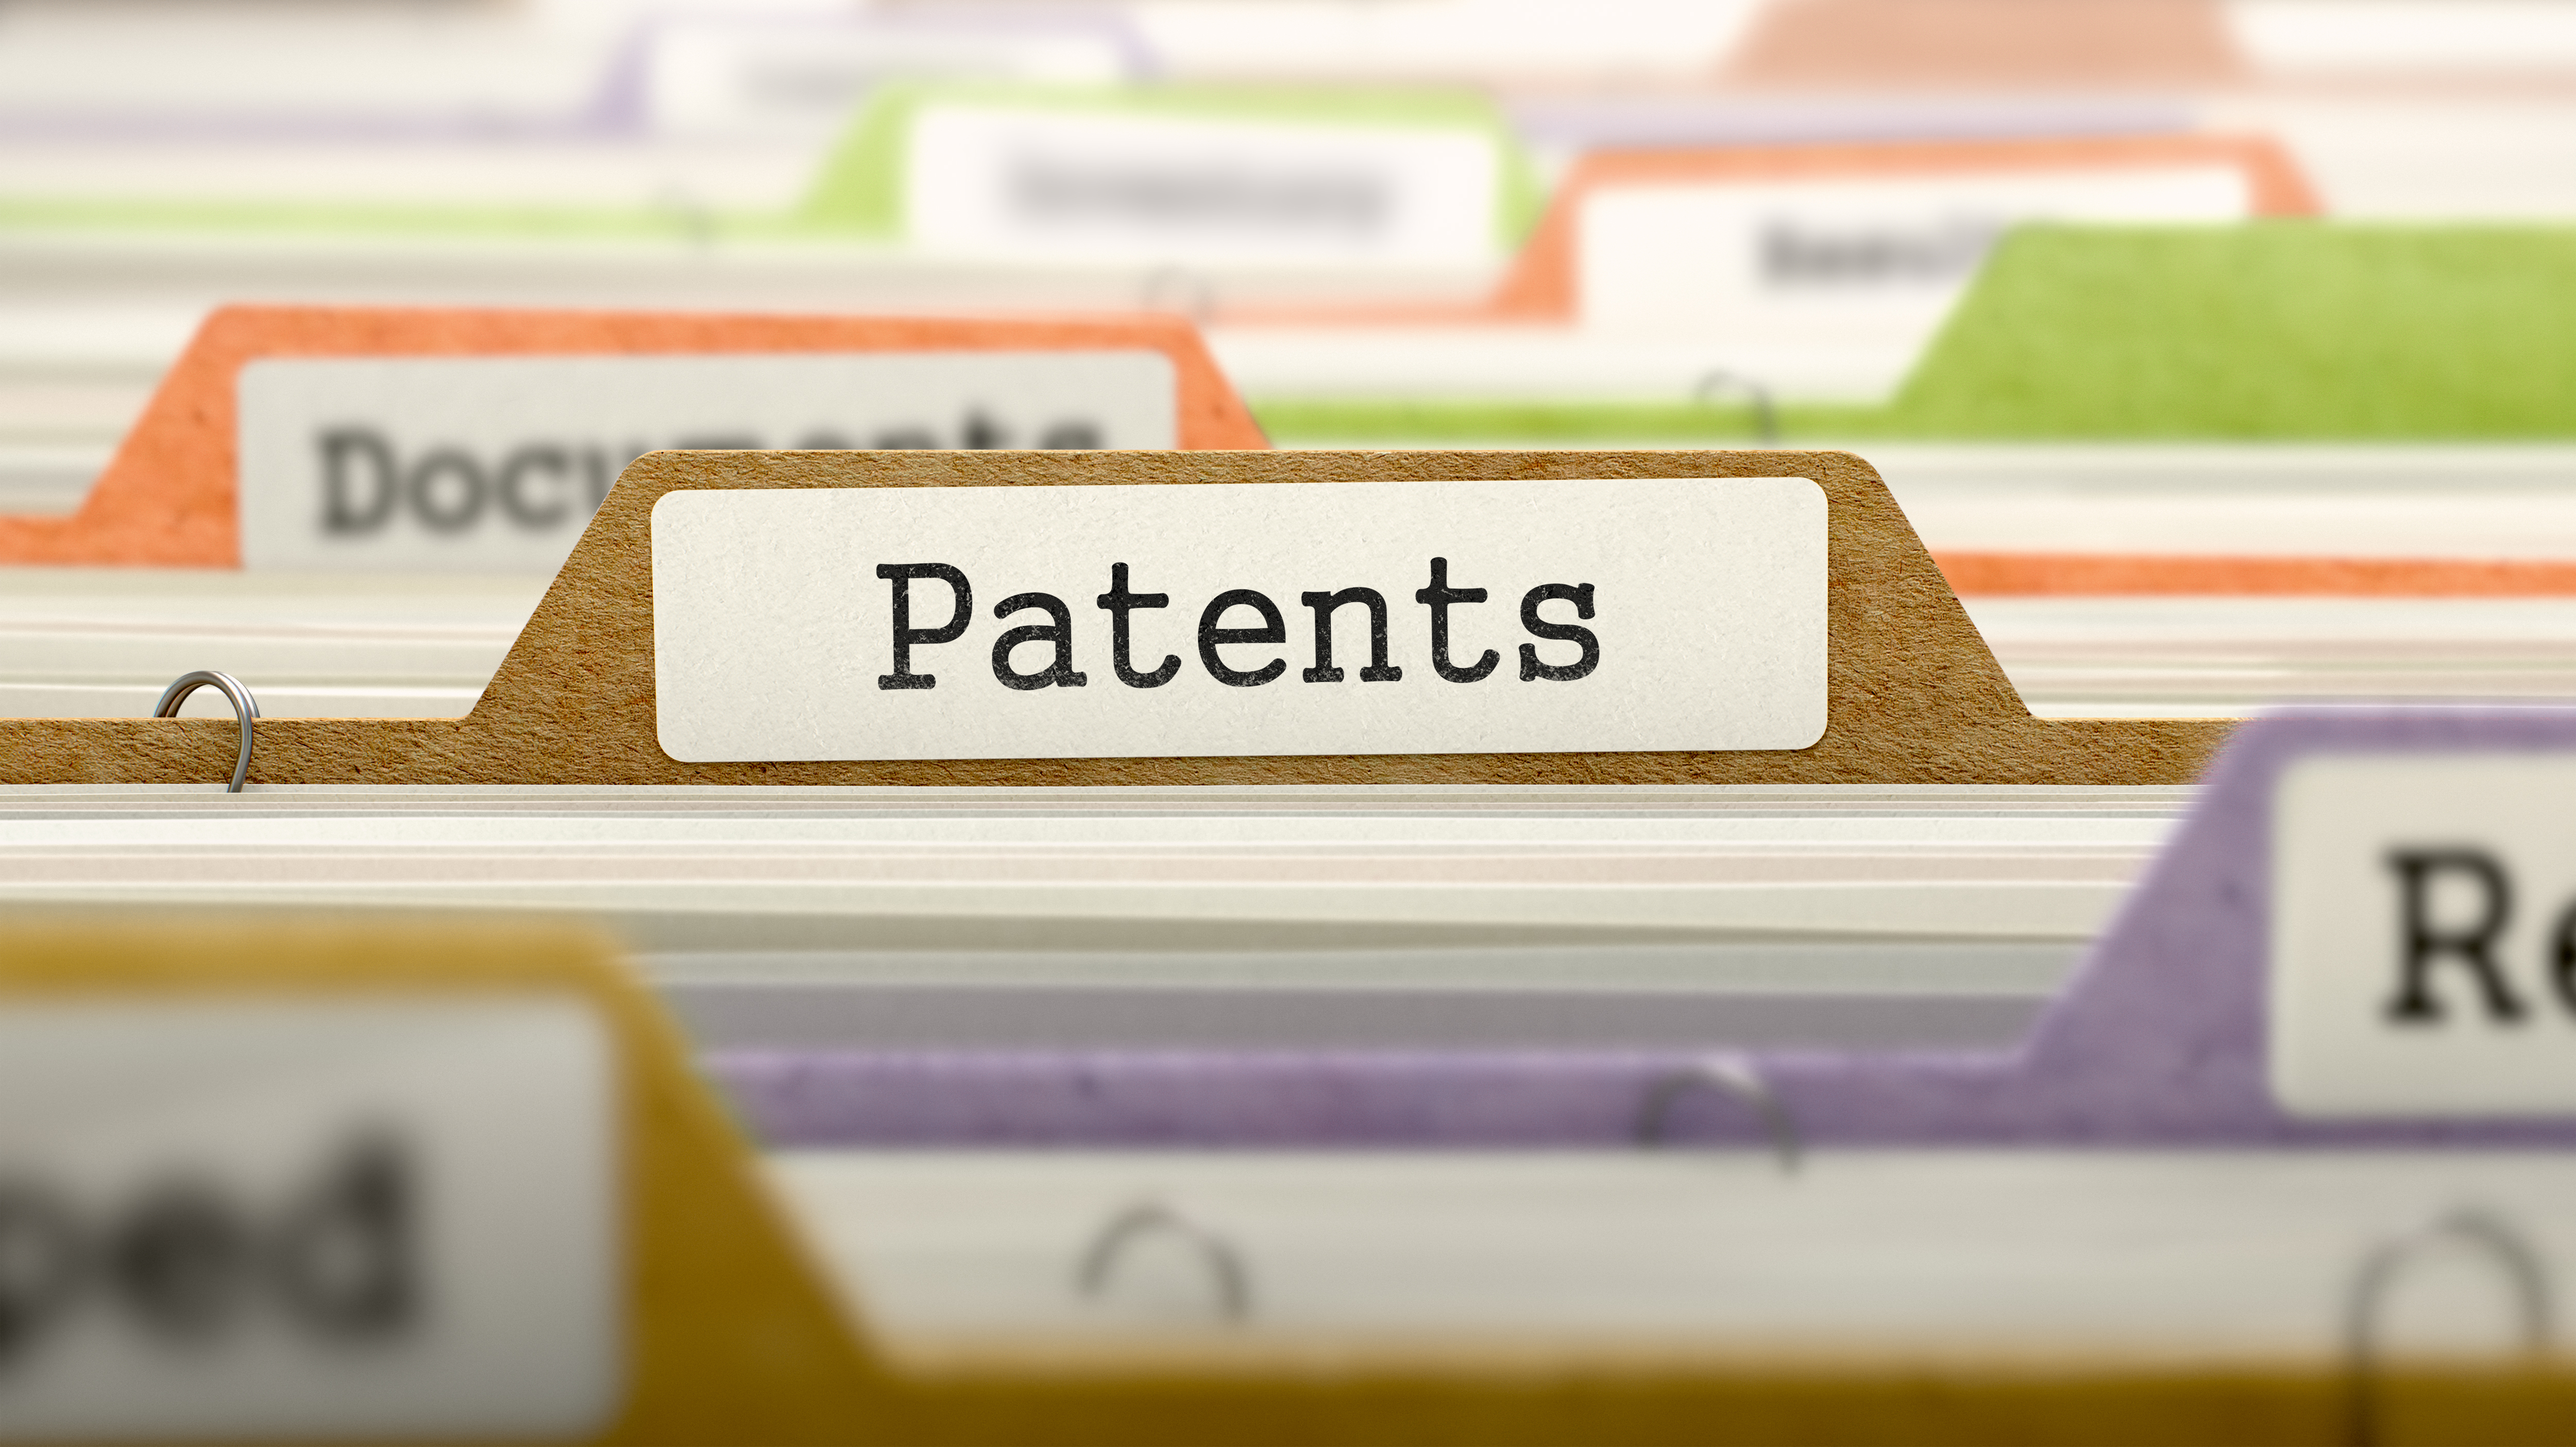 The new EU patent system – what's in it for SMEs?